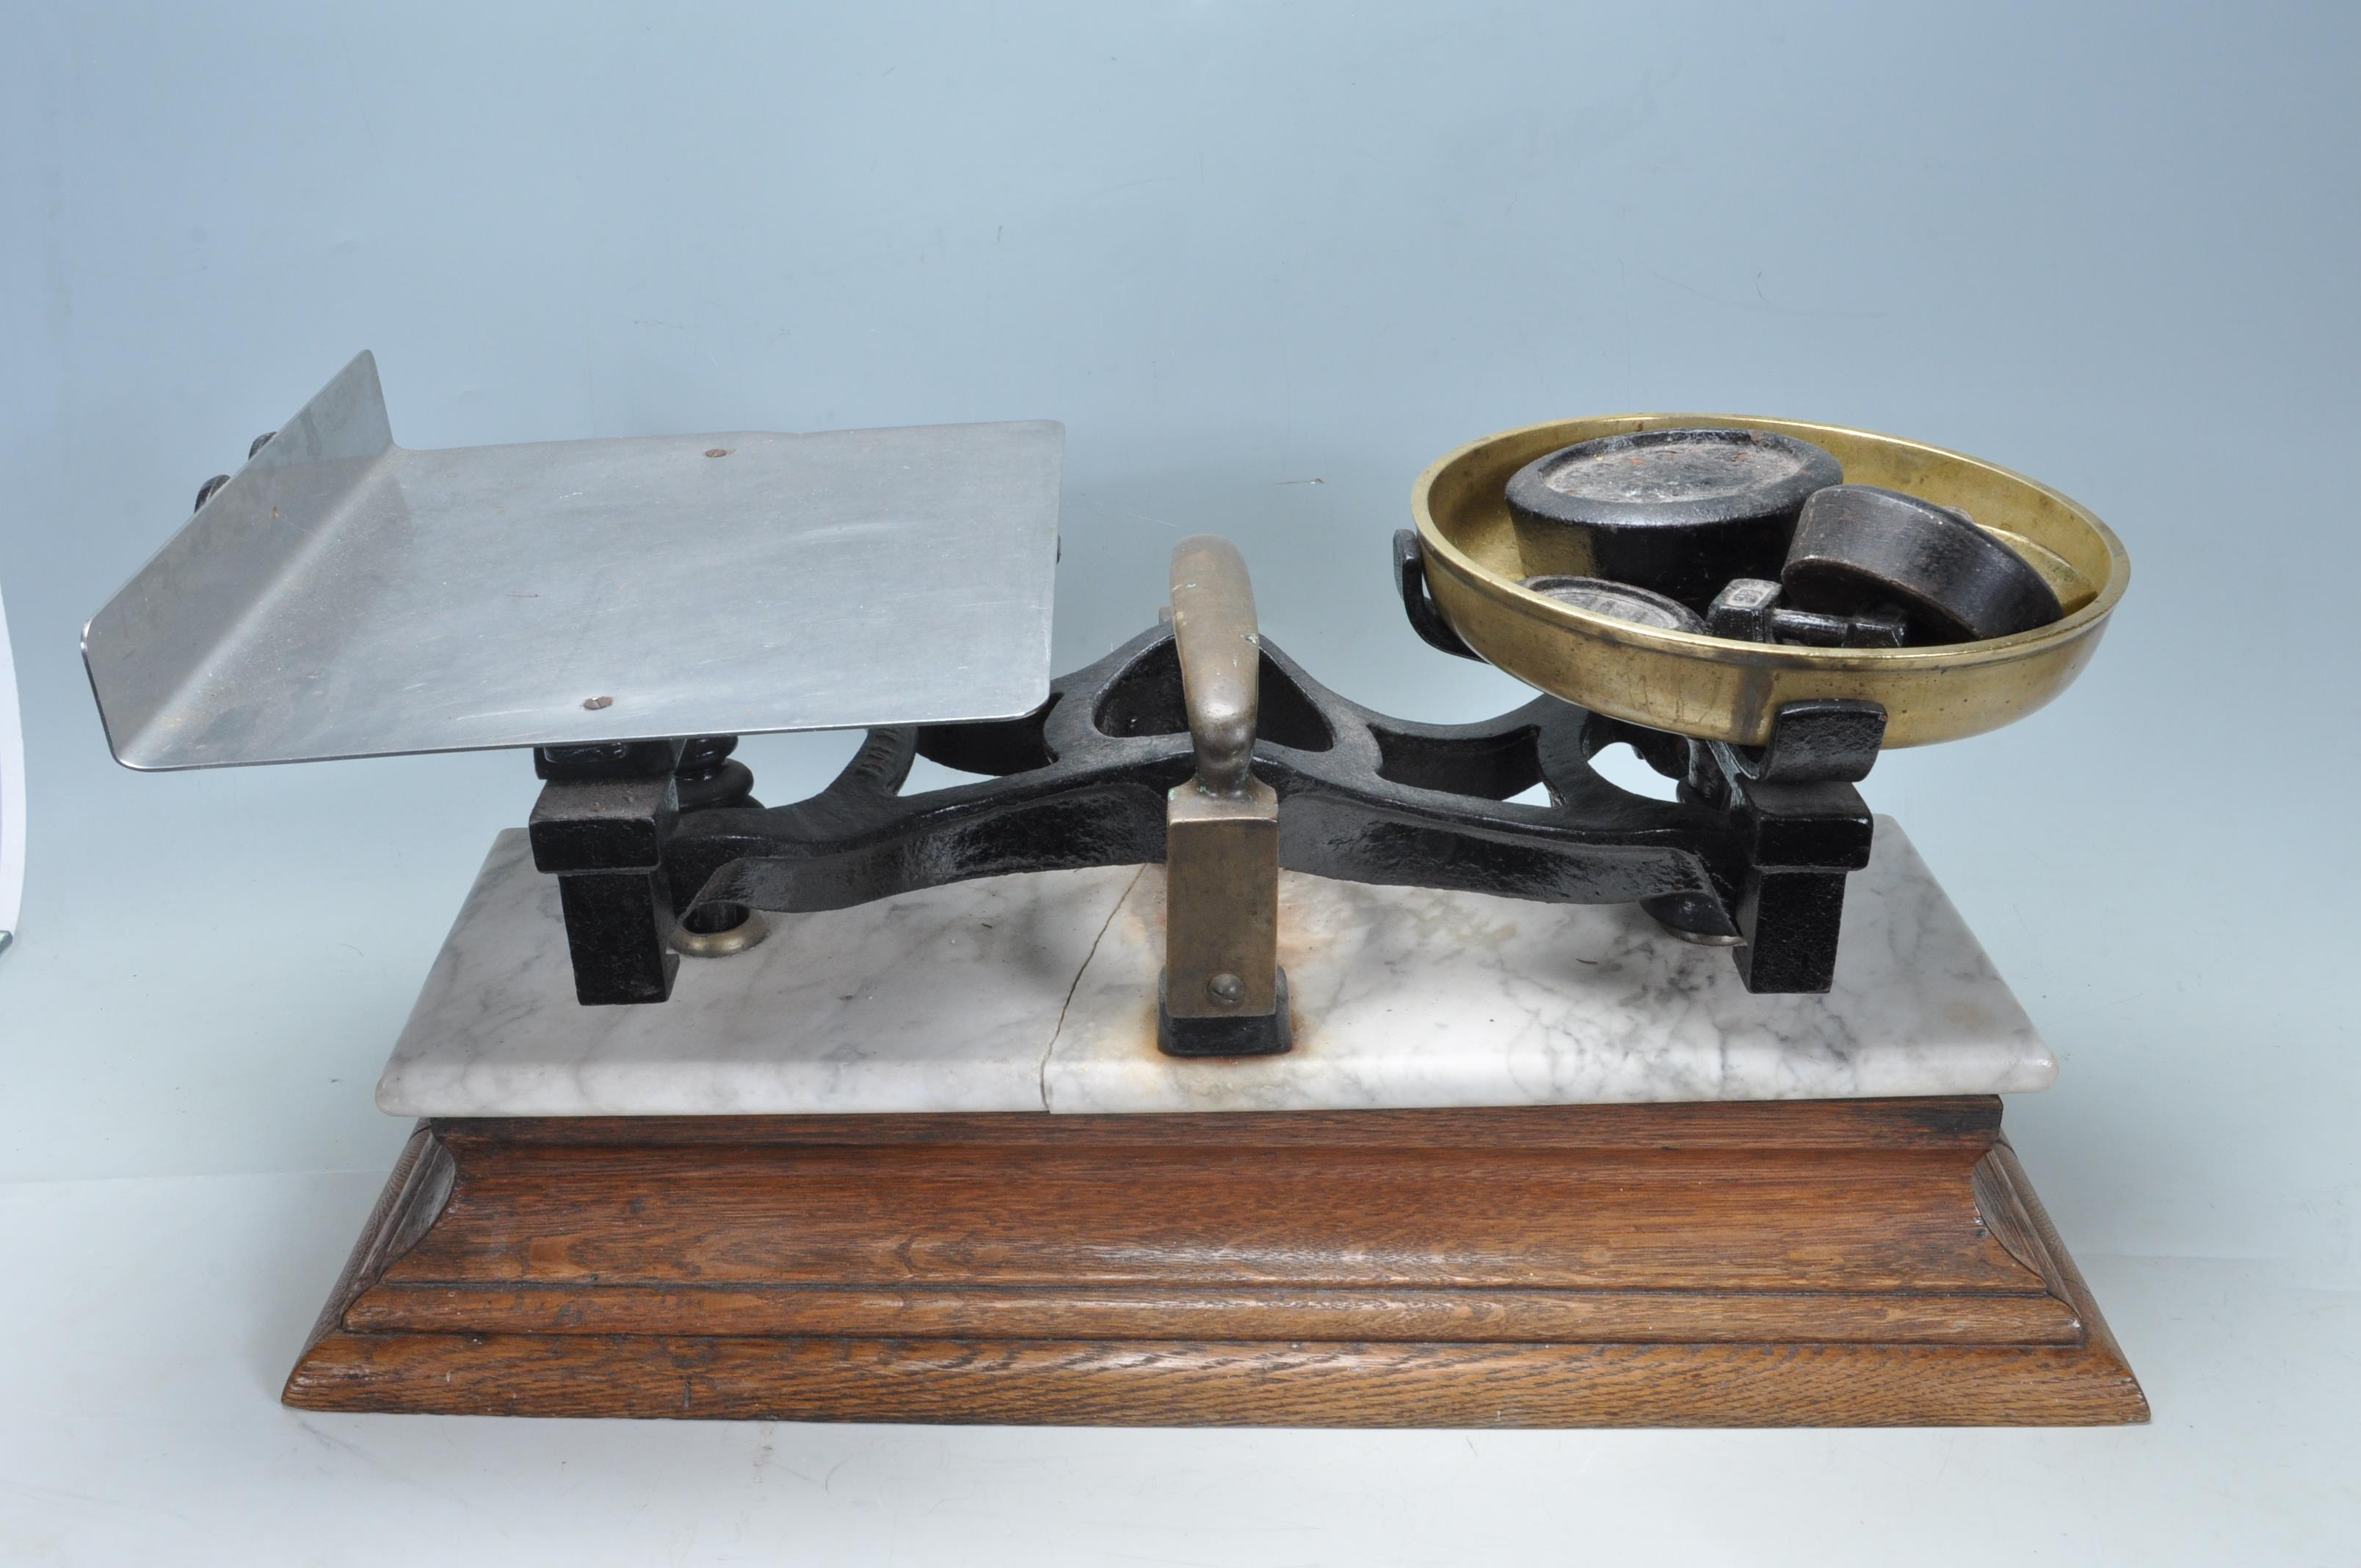 EARLY 20TH CENTURY 1920S MARBLE TOPPED BUTCHERS SCALES - Image 3 of 4